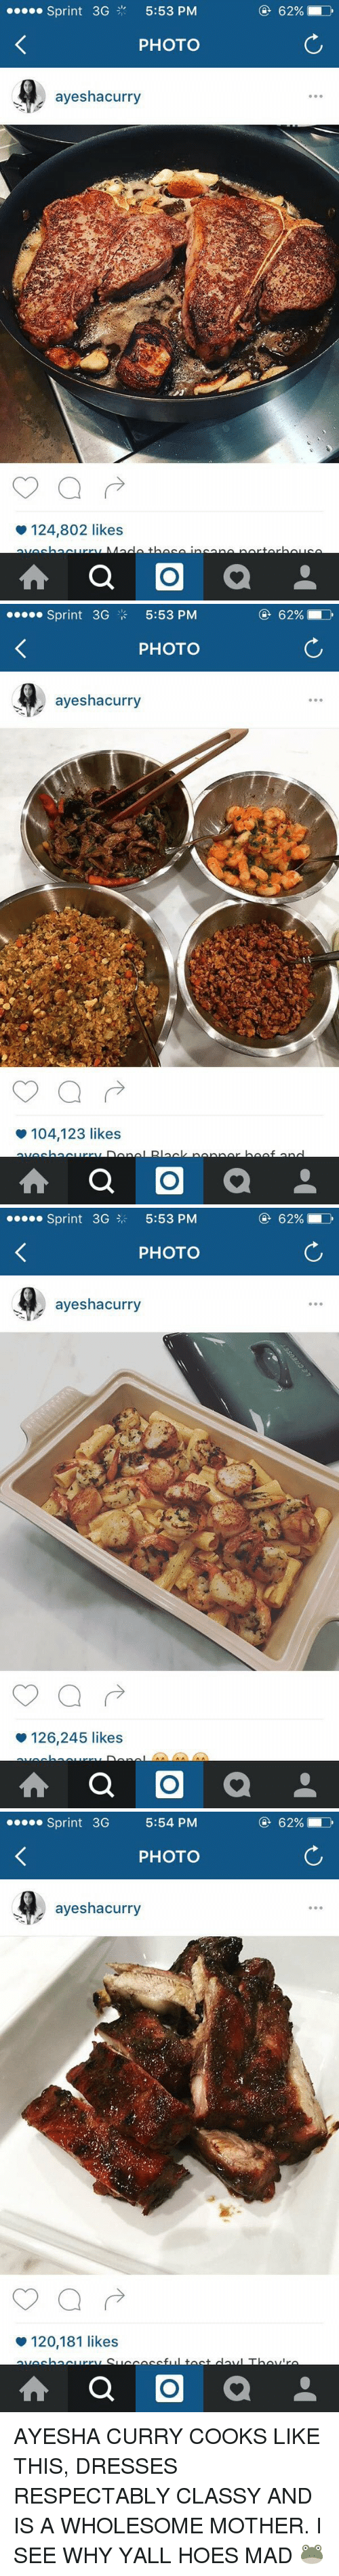 Ayesha Curry: Sprint 3G  5:53 PM  PHOTO  ayeshacurry  124,802 likes  A a O  a   Sprint 3G  5:53 PM  PHOTO  ayeshacurry  104,123 likes  A a O  a  62%   Sprint 3G 5:53 PM  PHOTO  ayeshacurry  126,245 likes  A a O  a   Sprint  3G  5:54 PM  PHOTO  ayeshacurry  120,181 likes  A a O  a AYESHA CURRY COOKS LIKE THIS, DRESSES RESPECTABLY CLASSY AND IS A WHOLESOME MOTHER. I SEE WHY YALL HOES MAD 🐸